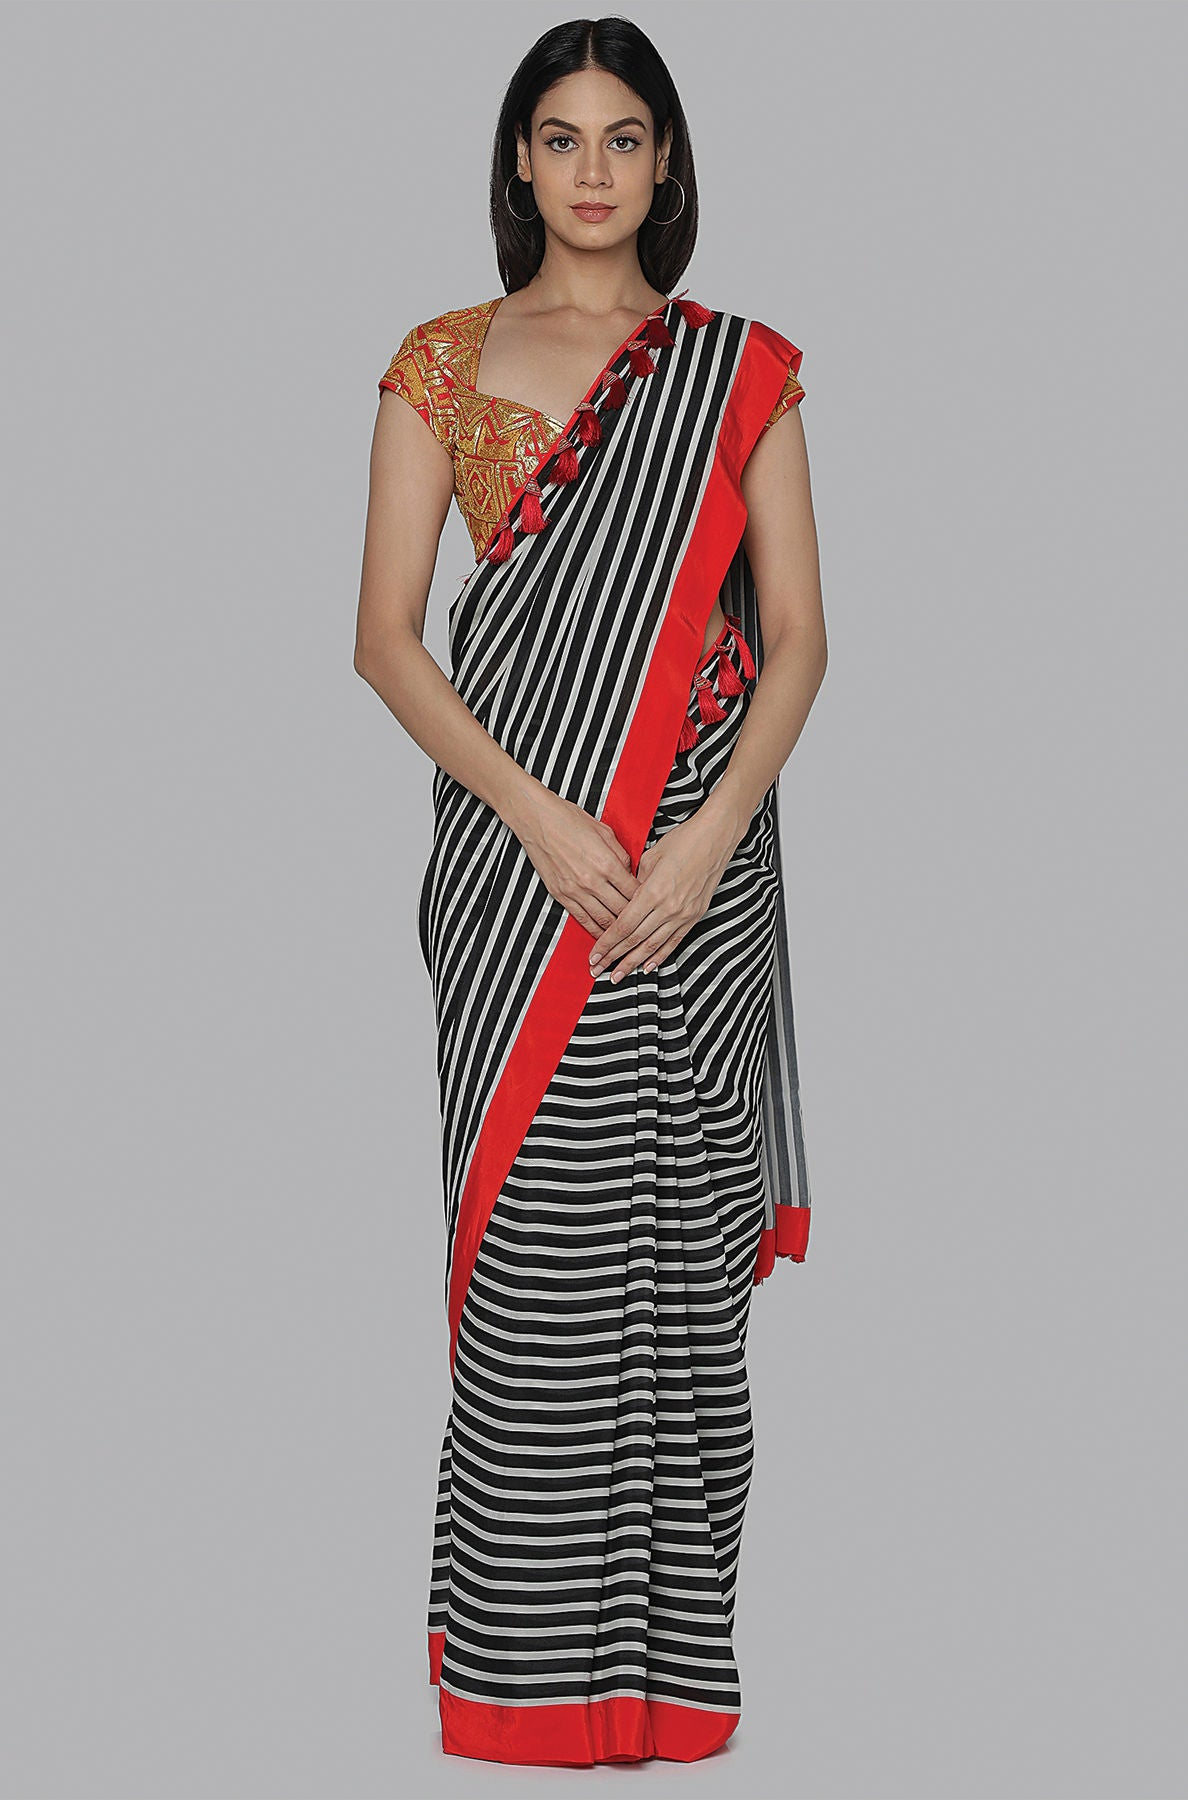 BLACK AND WHITE STRIPES SARI WITH RED EMBROIDERED BLOUSE PIECE - The Grand Trunk